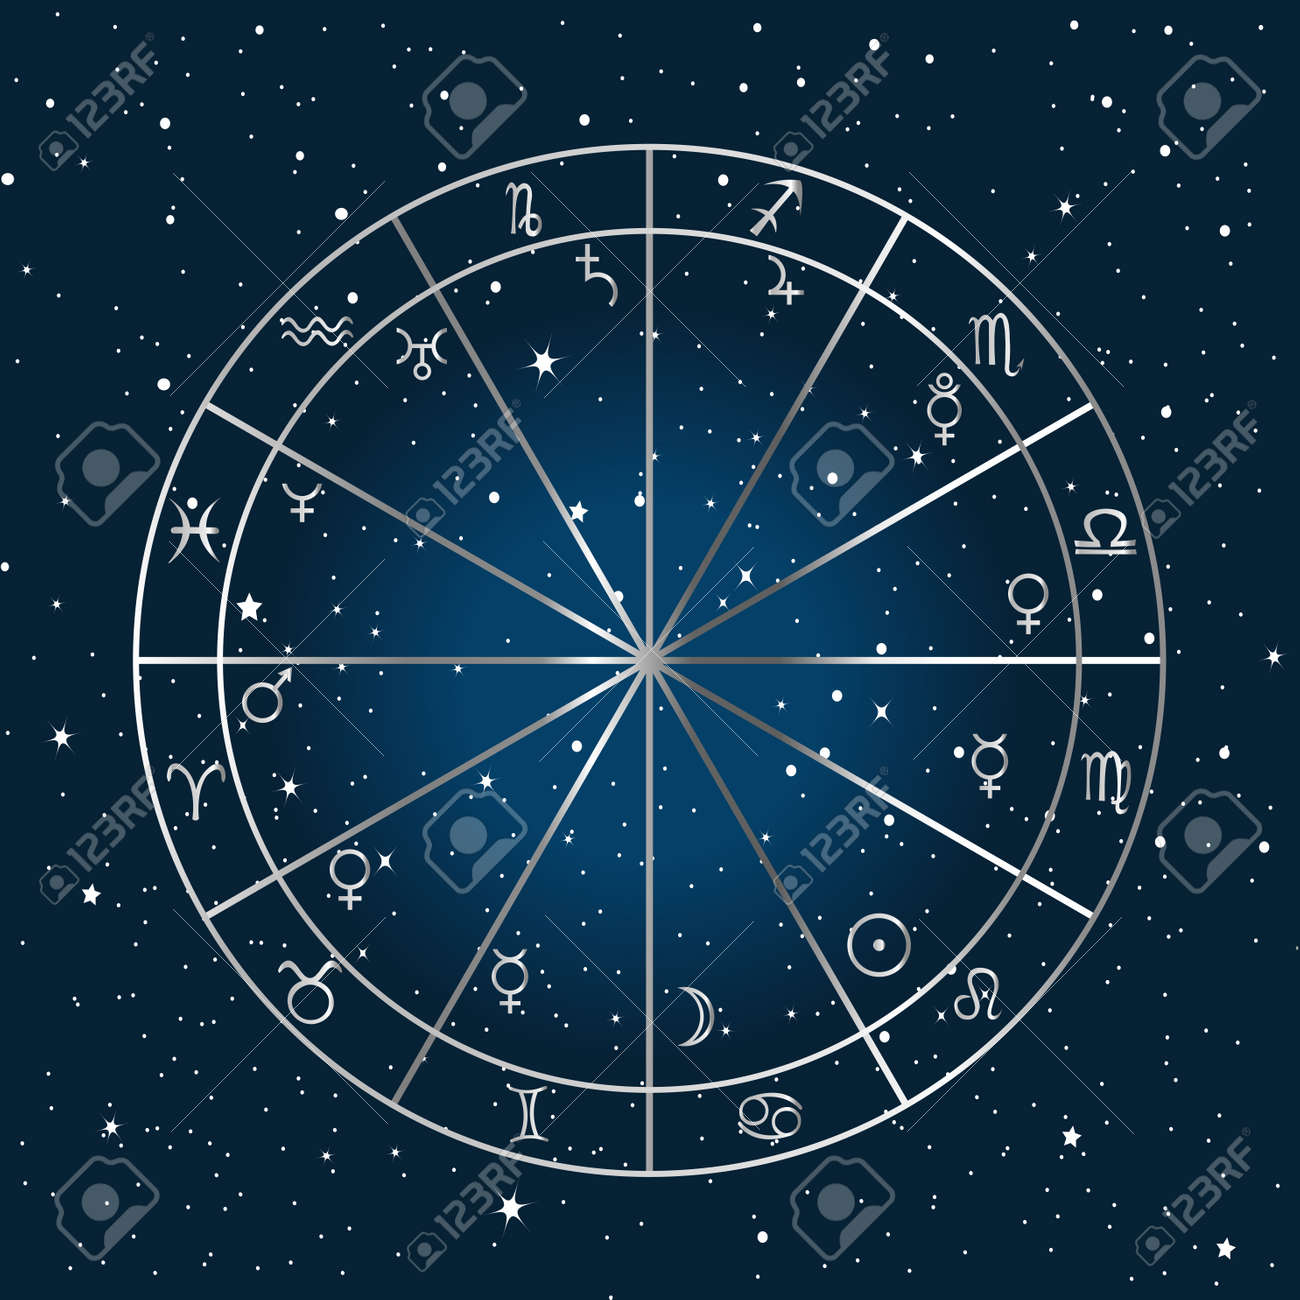 astrology background images